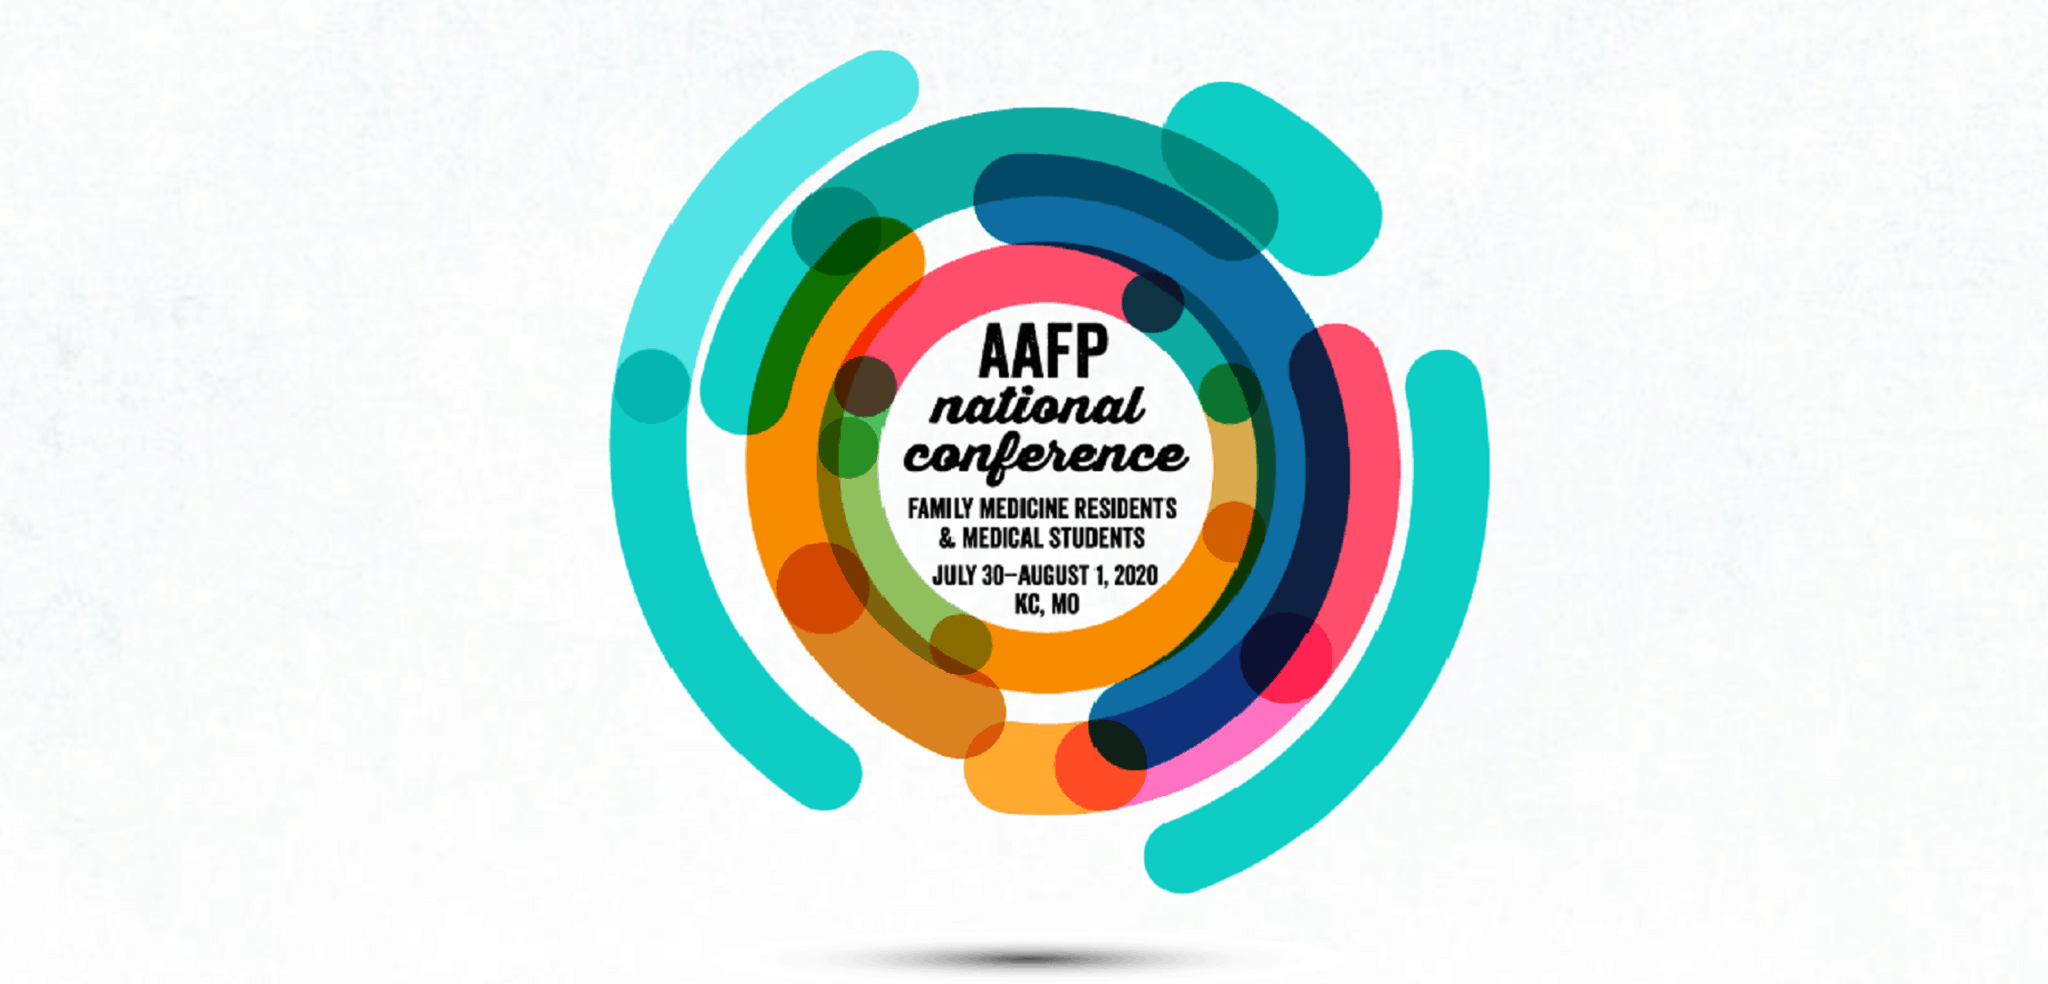 AAFP National Conference Flyer